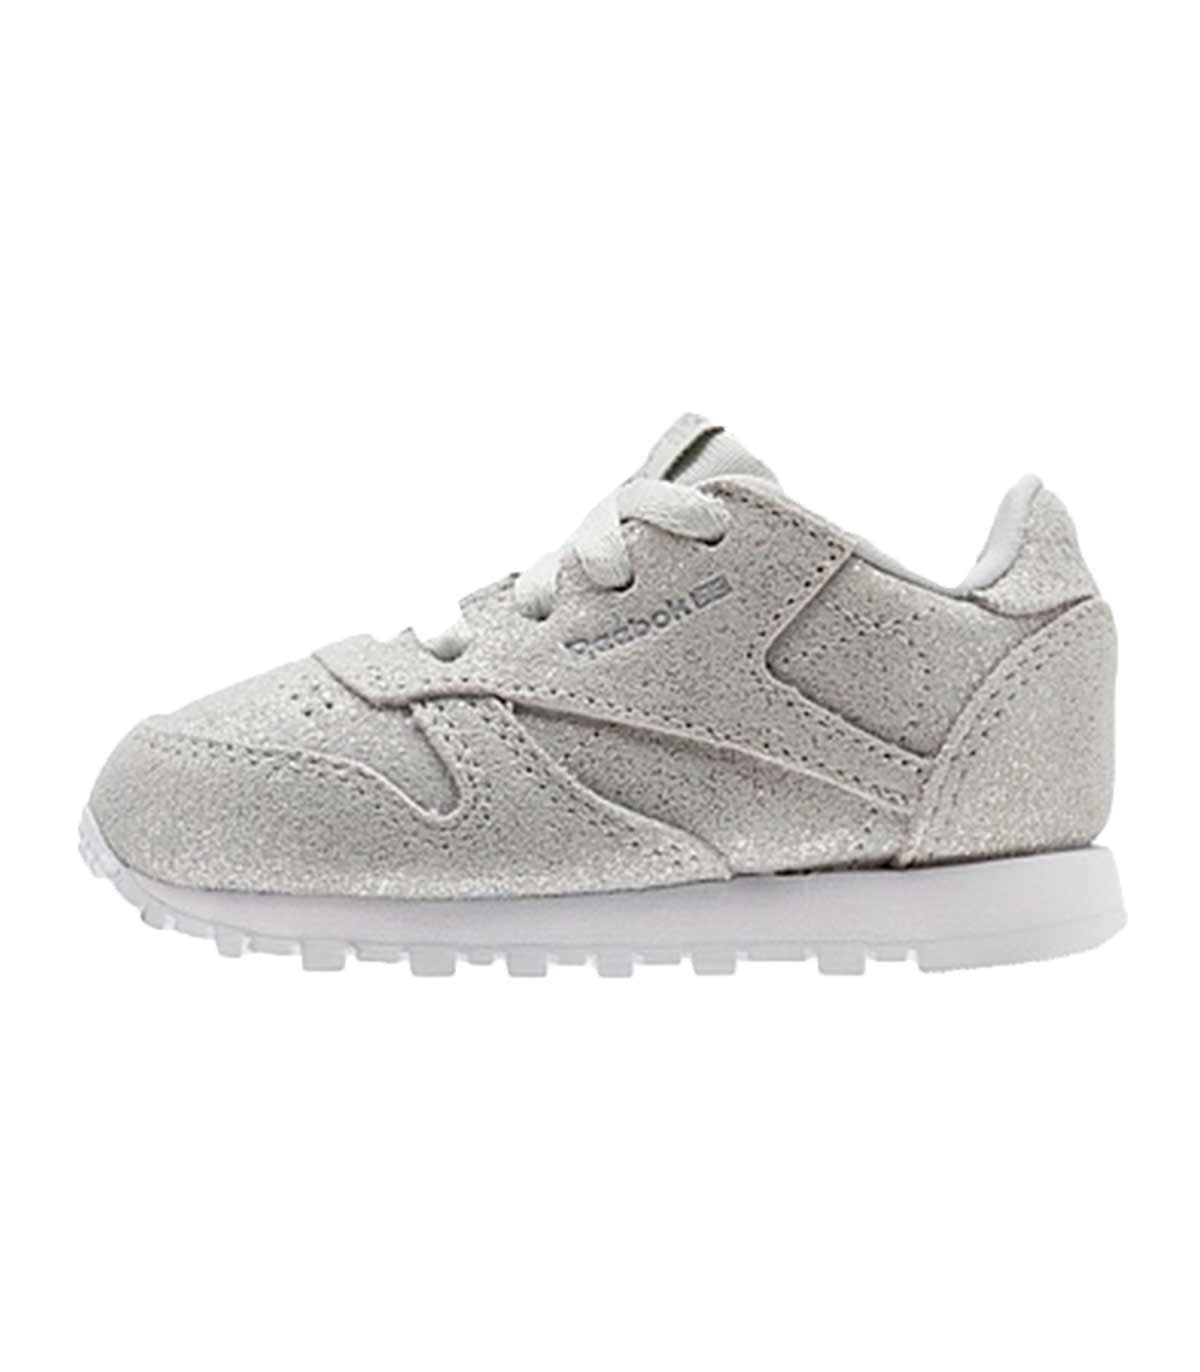 041bf994cc6e2 Comprar Zapatillas Reebok Classic leather